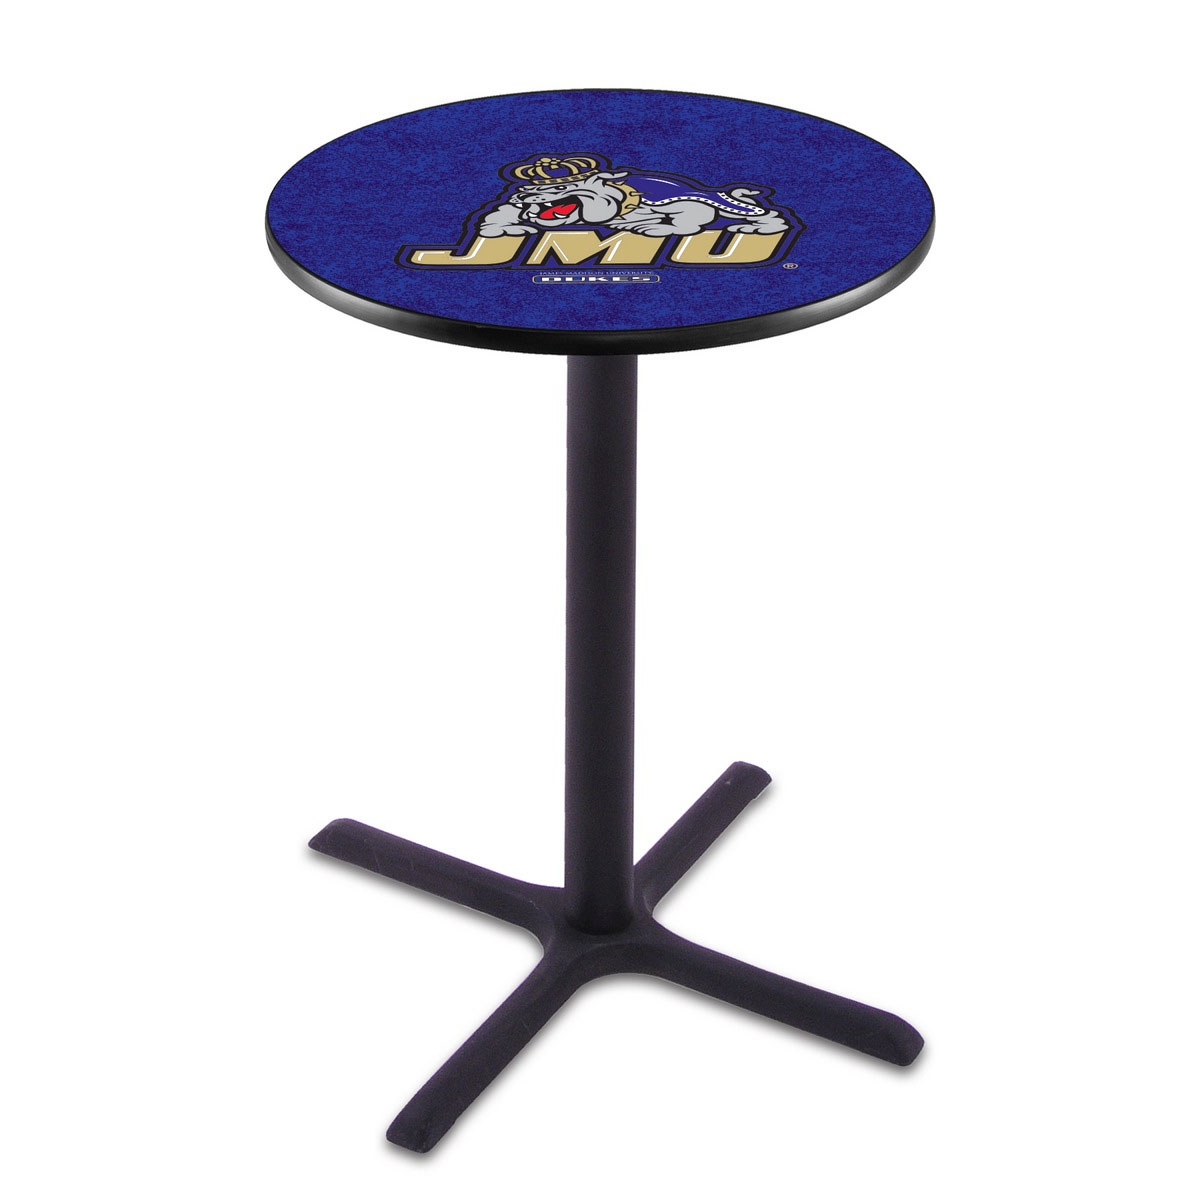 View James Madison Wrinkle Pub Table Product Photo